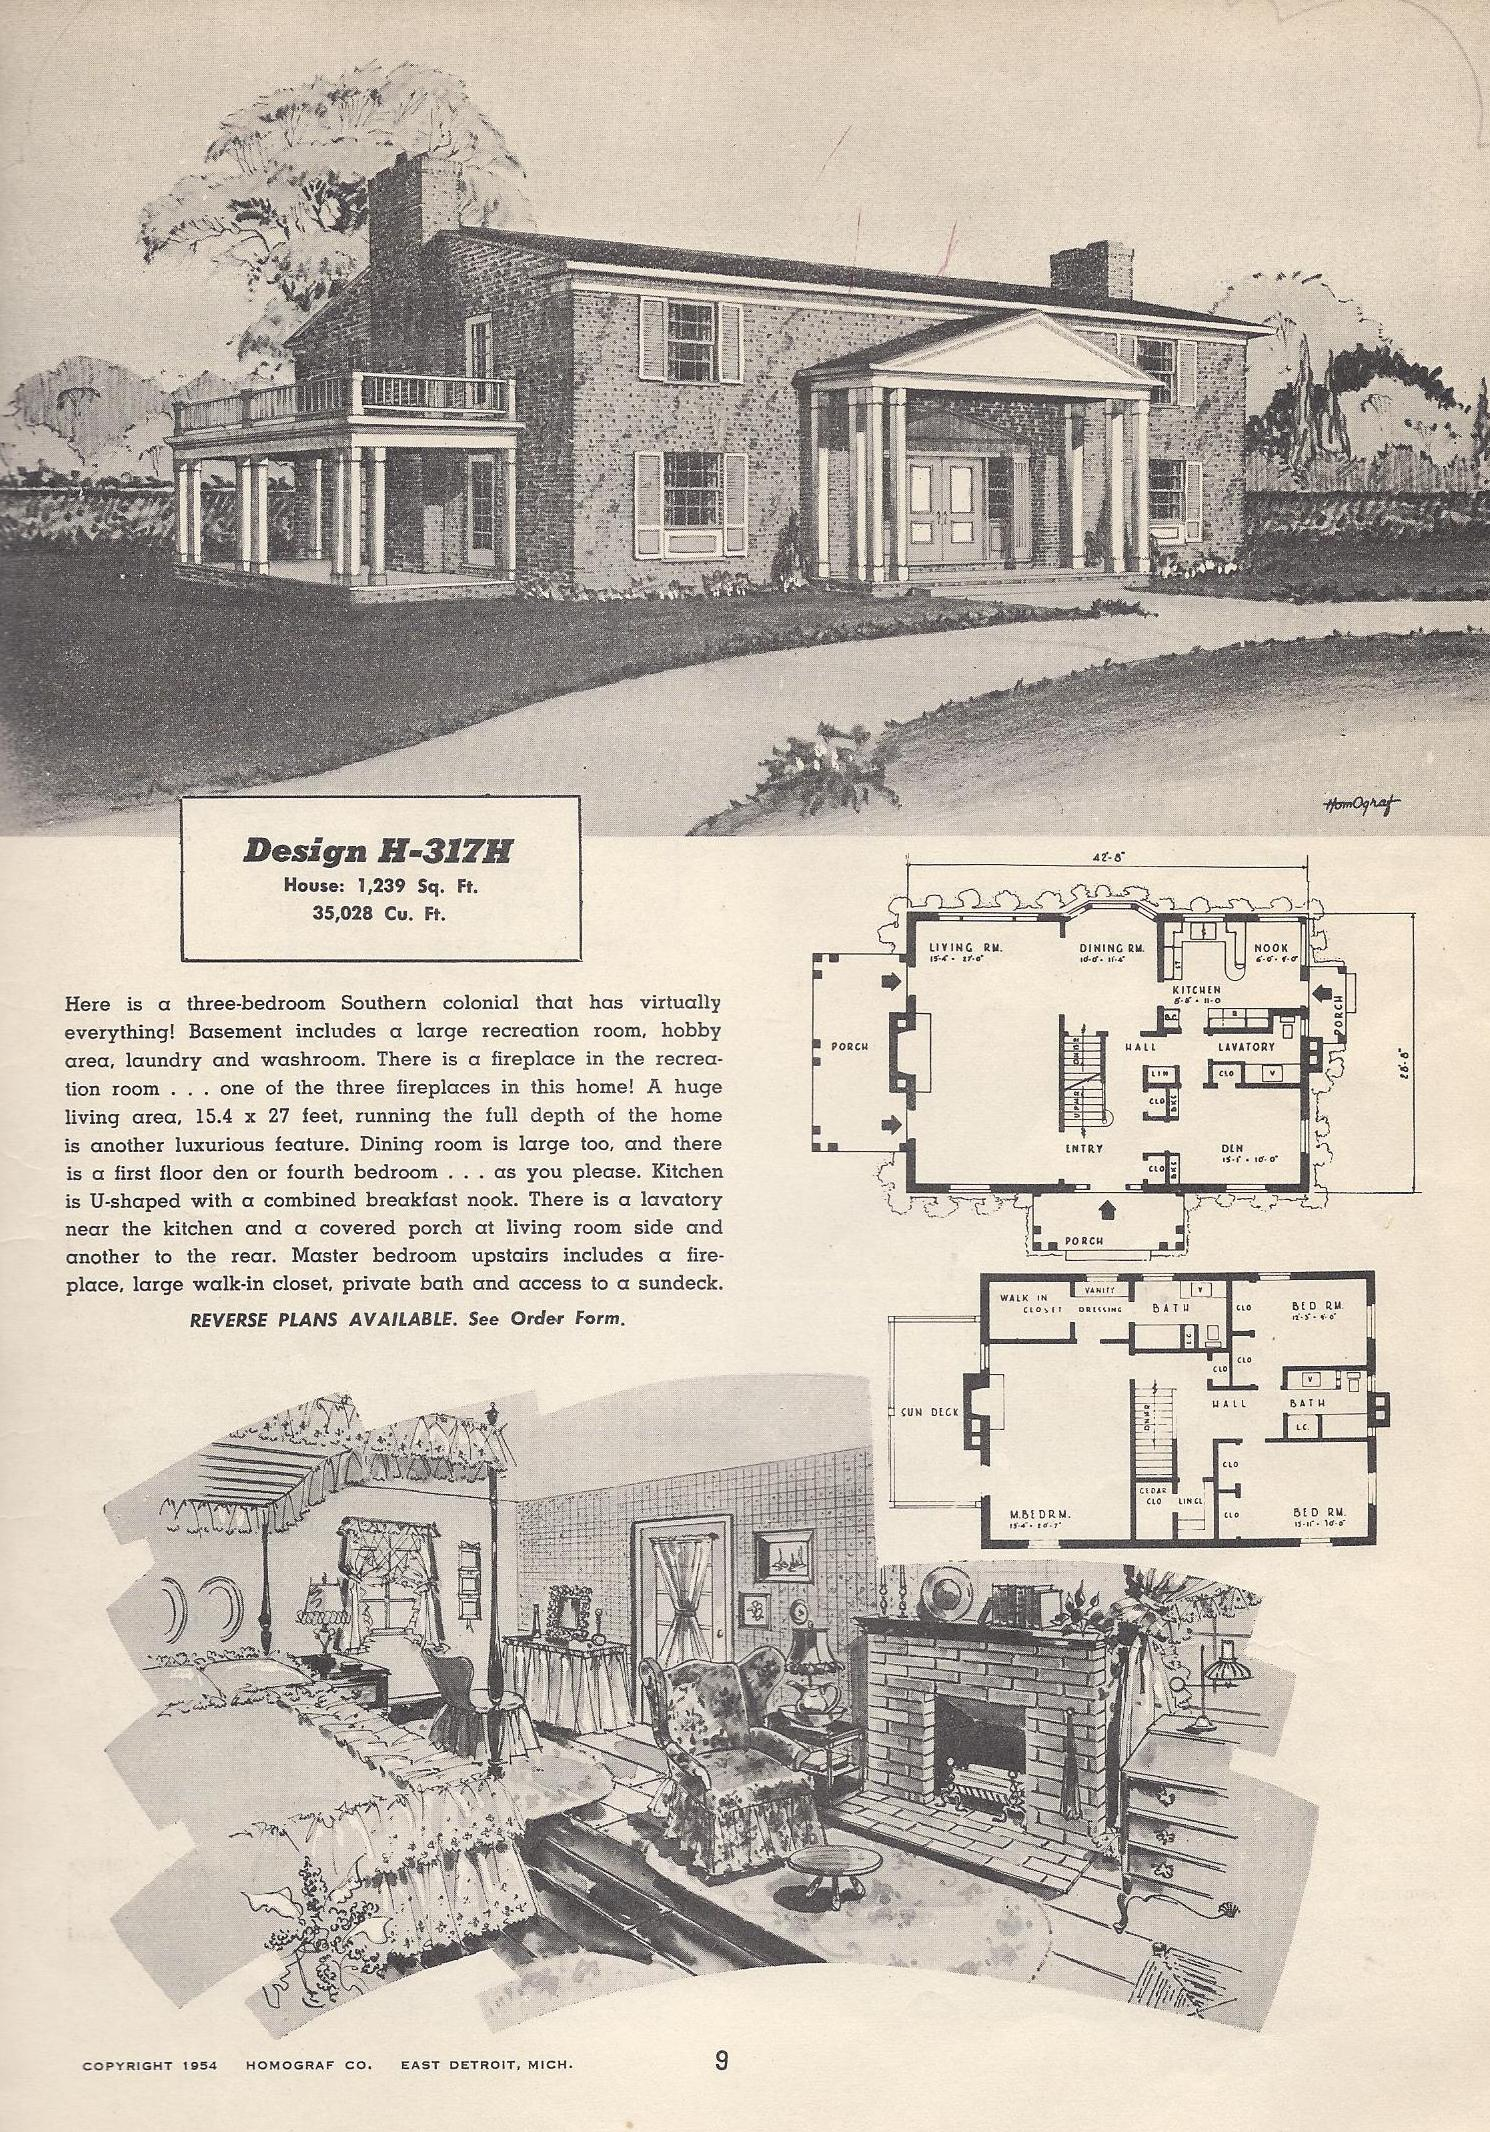 vintage house plans 317h antique alter ego